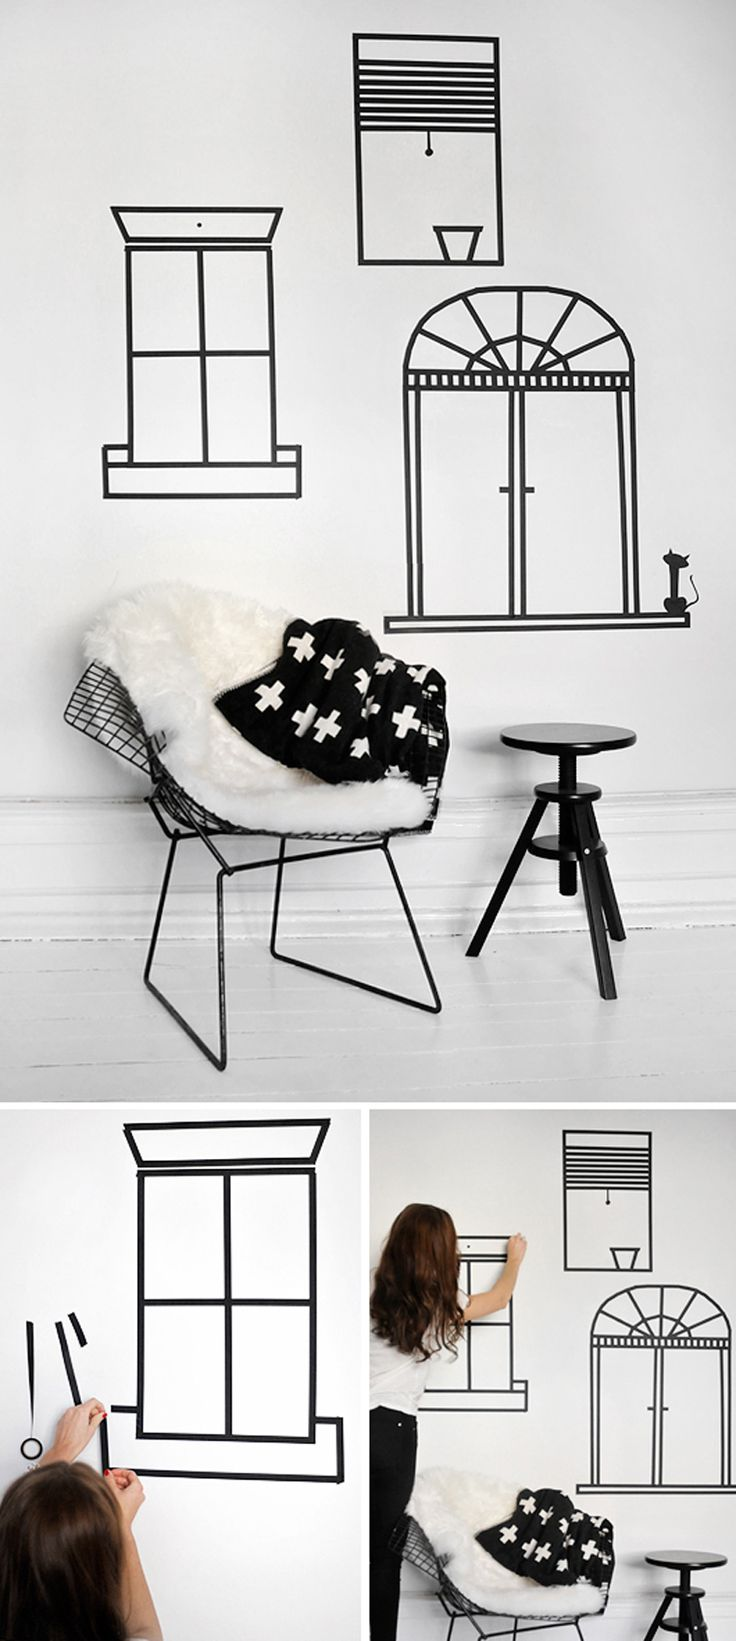 10 DIY Wall Decorations With Washi Tape | http://www.designrulz.com/design/2015/04/10-diy-wall-decorations-with-washi-tape/